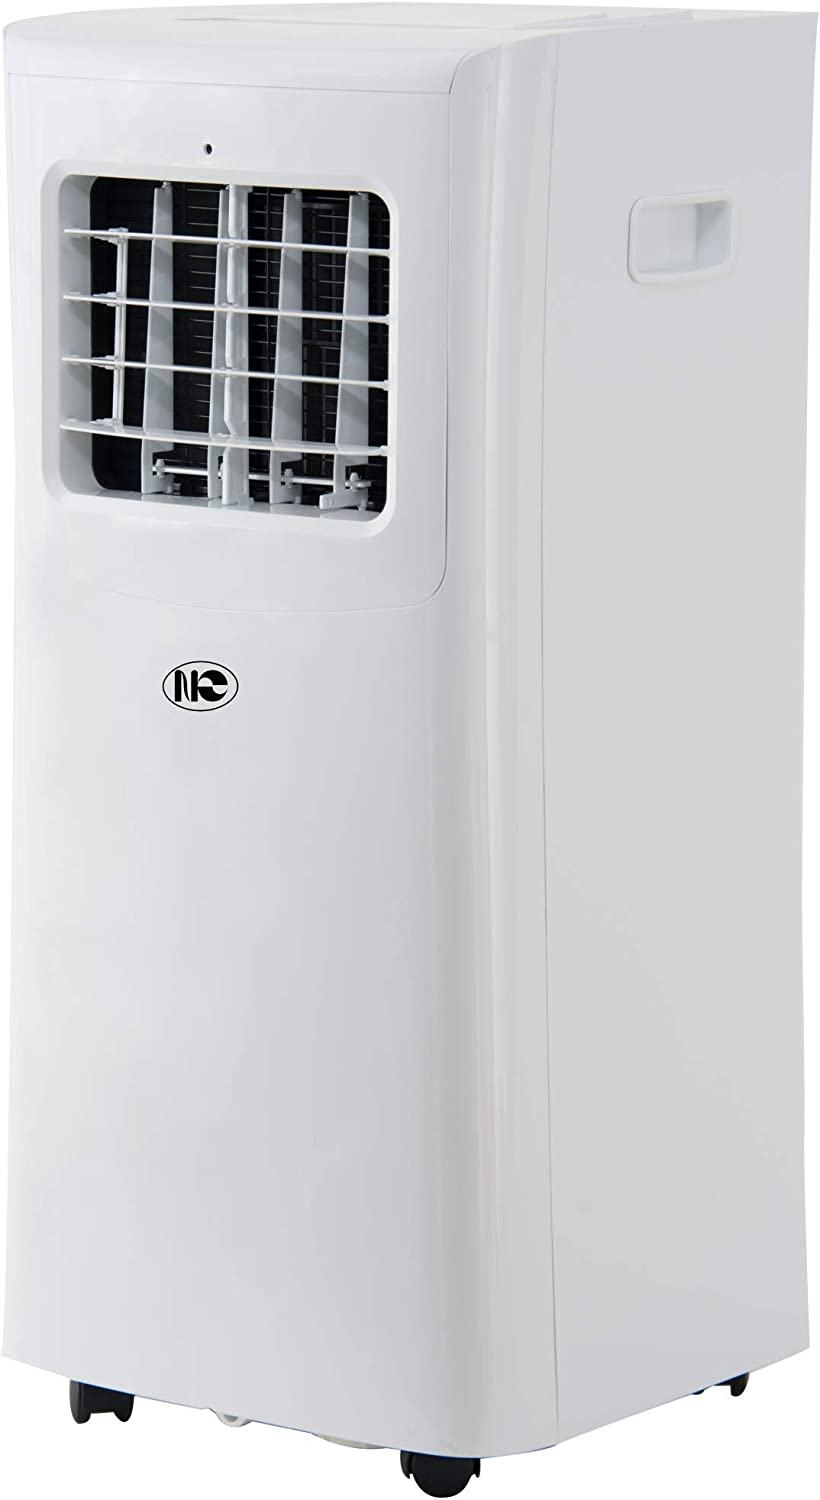 Portable Air Conditioner, 8000 BTU, 200 sq.ft, Standing Room AC Unit with LED Display, Remote Control and 24-Hour ON/OFF Programmable Timer, Low Noise Level, ETL Certified